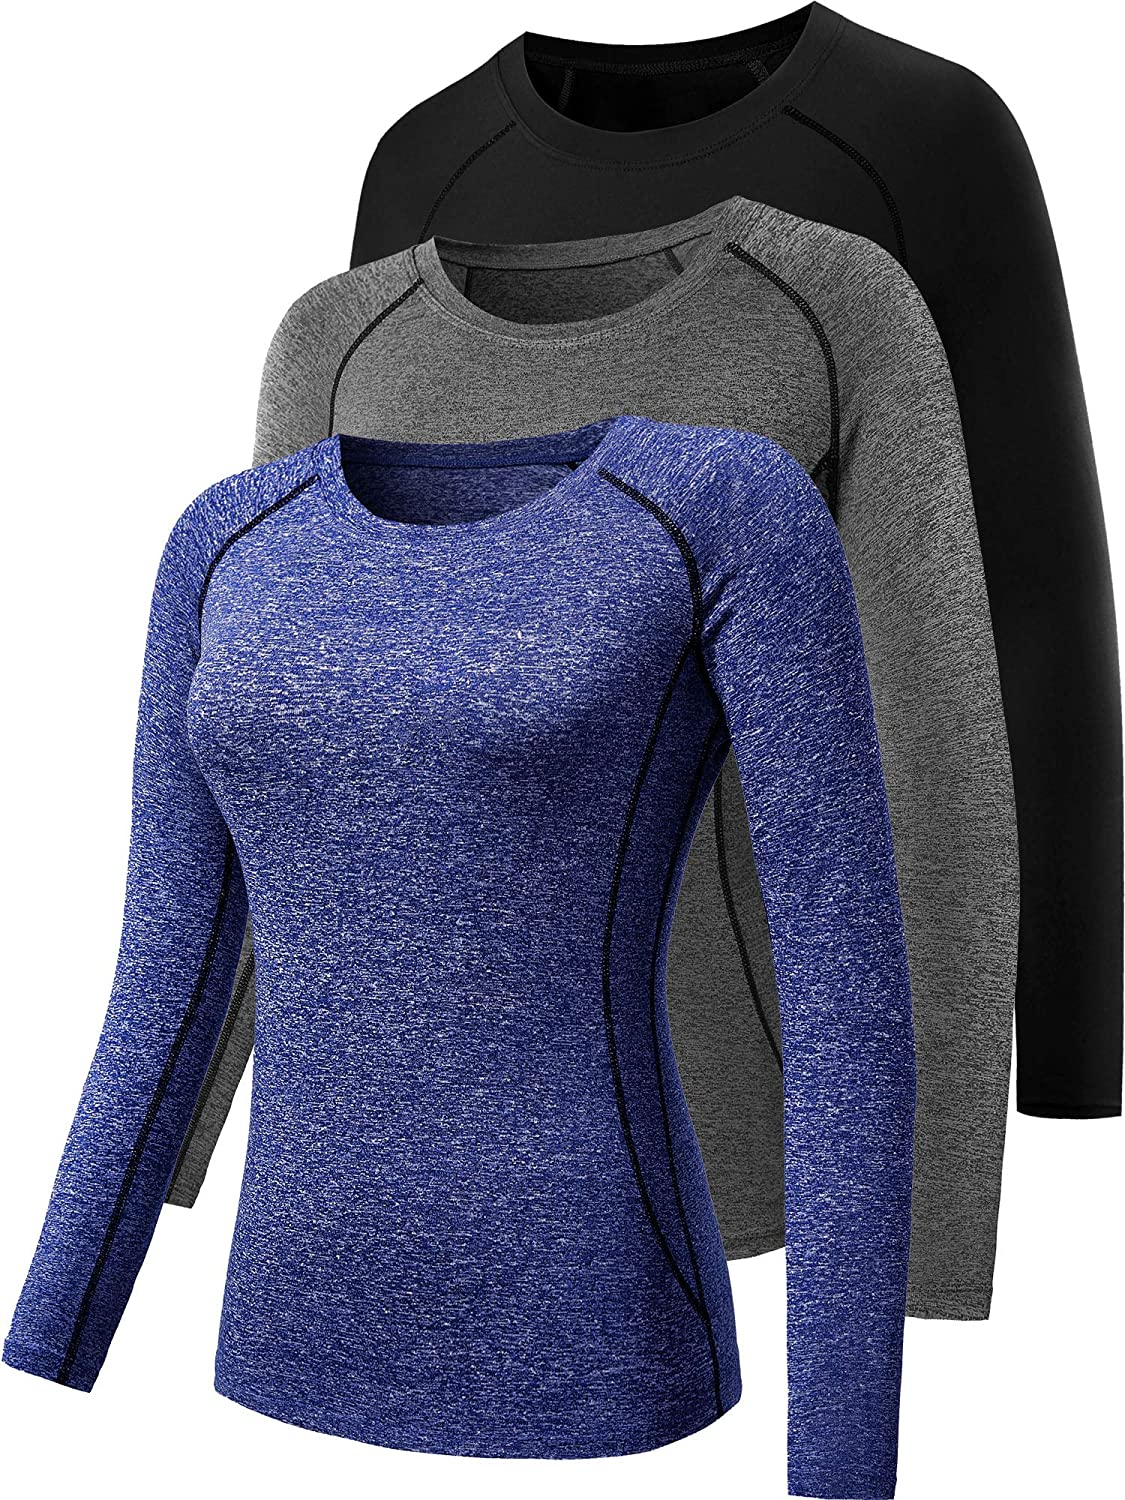 CADMUS Women's 3 Pack Running Long Quantity Recommendation limited Compression T Sleeve Shirt